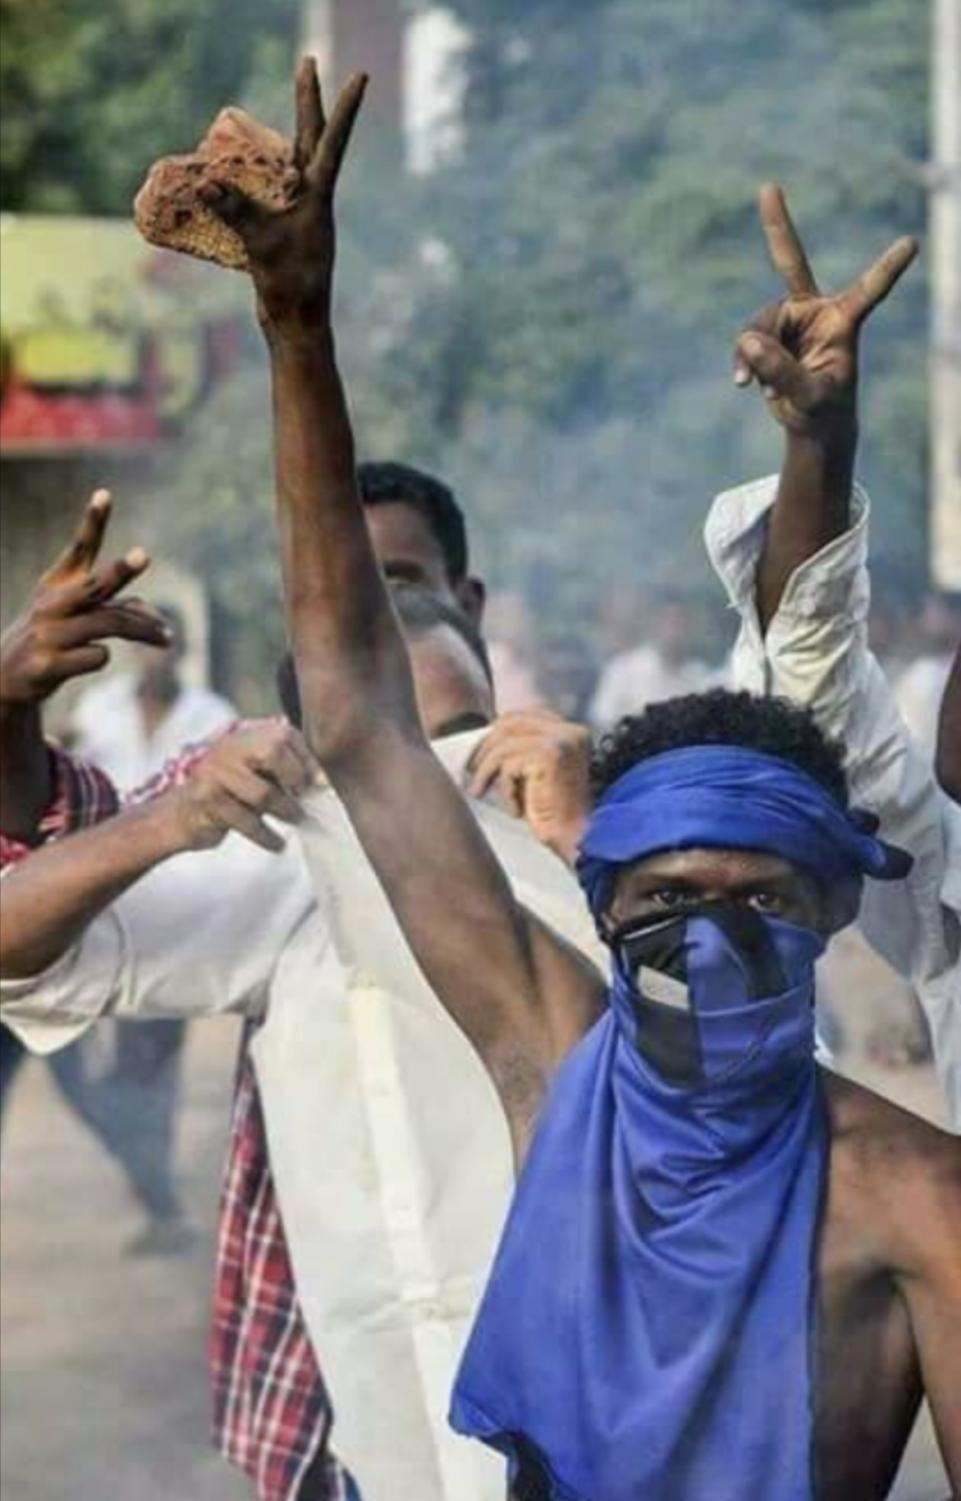 This iconic photo from an early uprising in Sudan shows citizens being tear gassed at a protest. The man depicted has become a symbol for the Sudanese people, some even dressing like him for current protests.